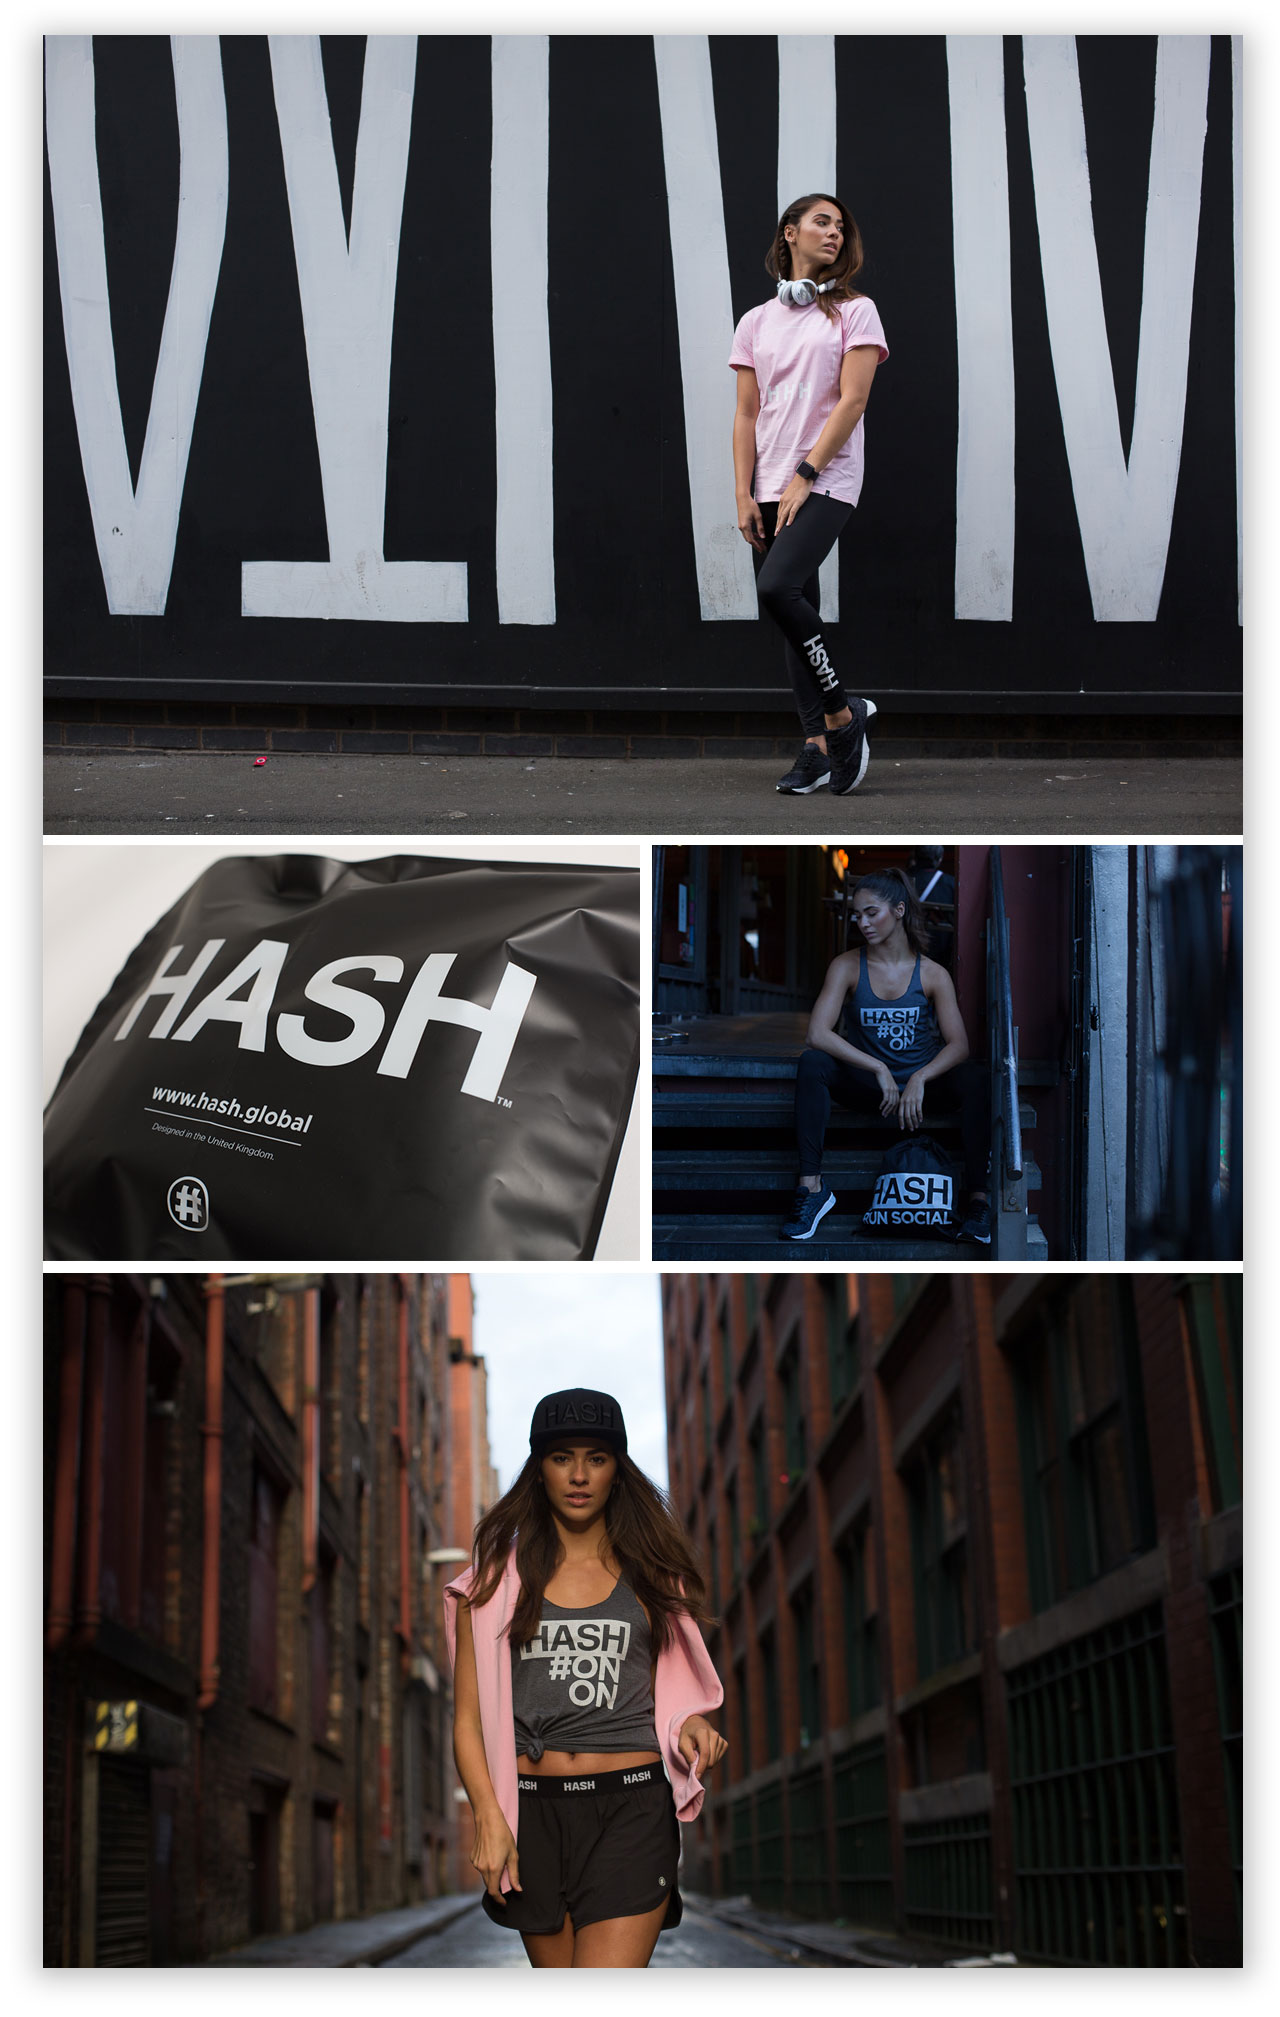 blog-image-Hash-Photoshoot